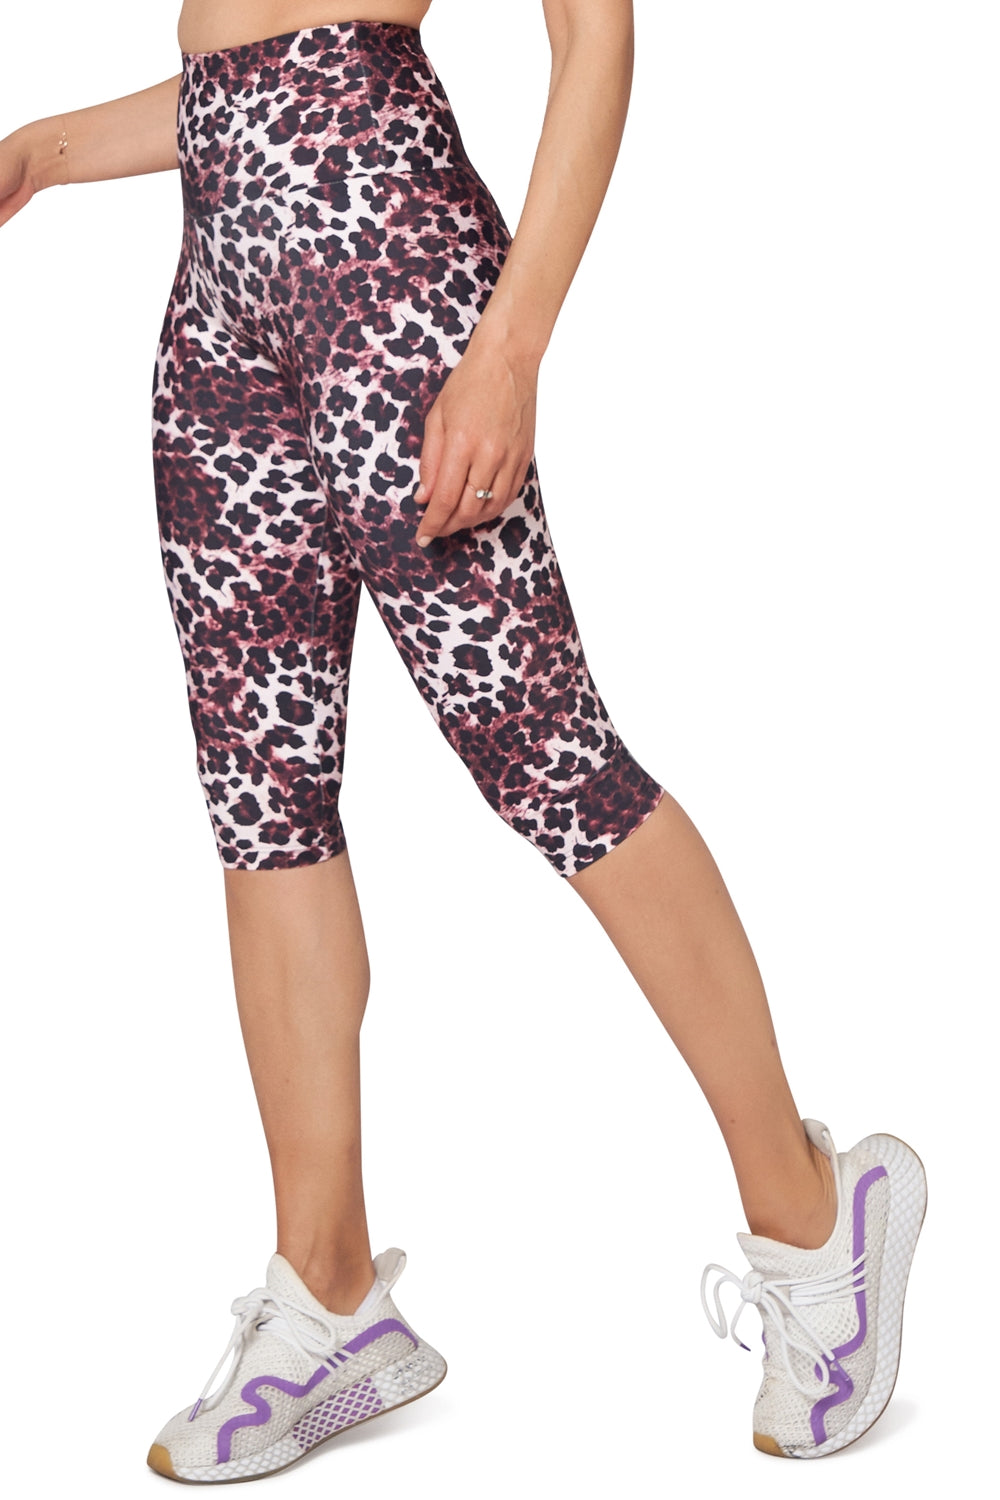 Pink Cheetah High Waisted  Under Knee